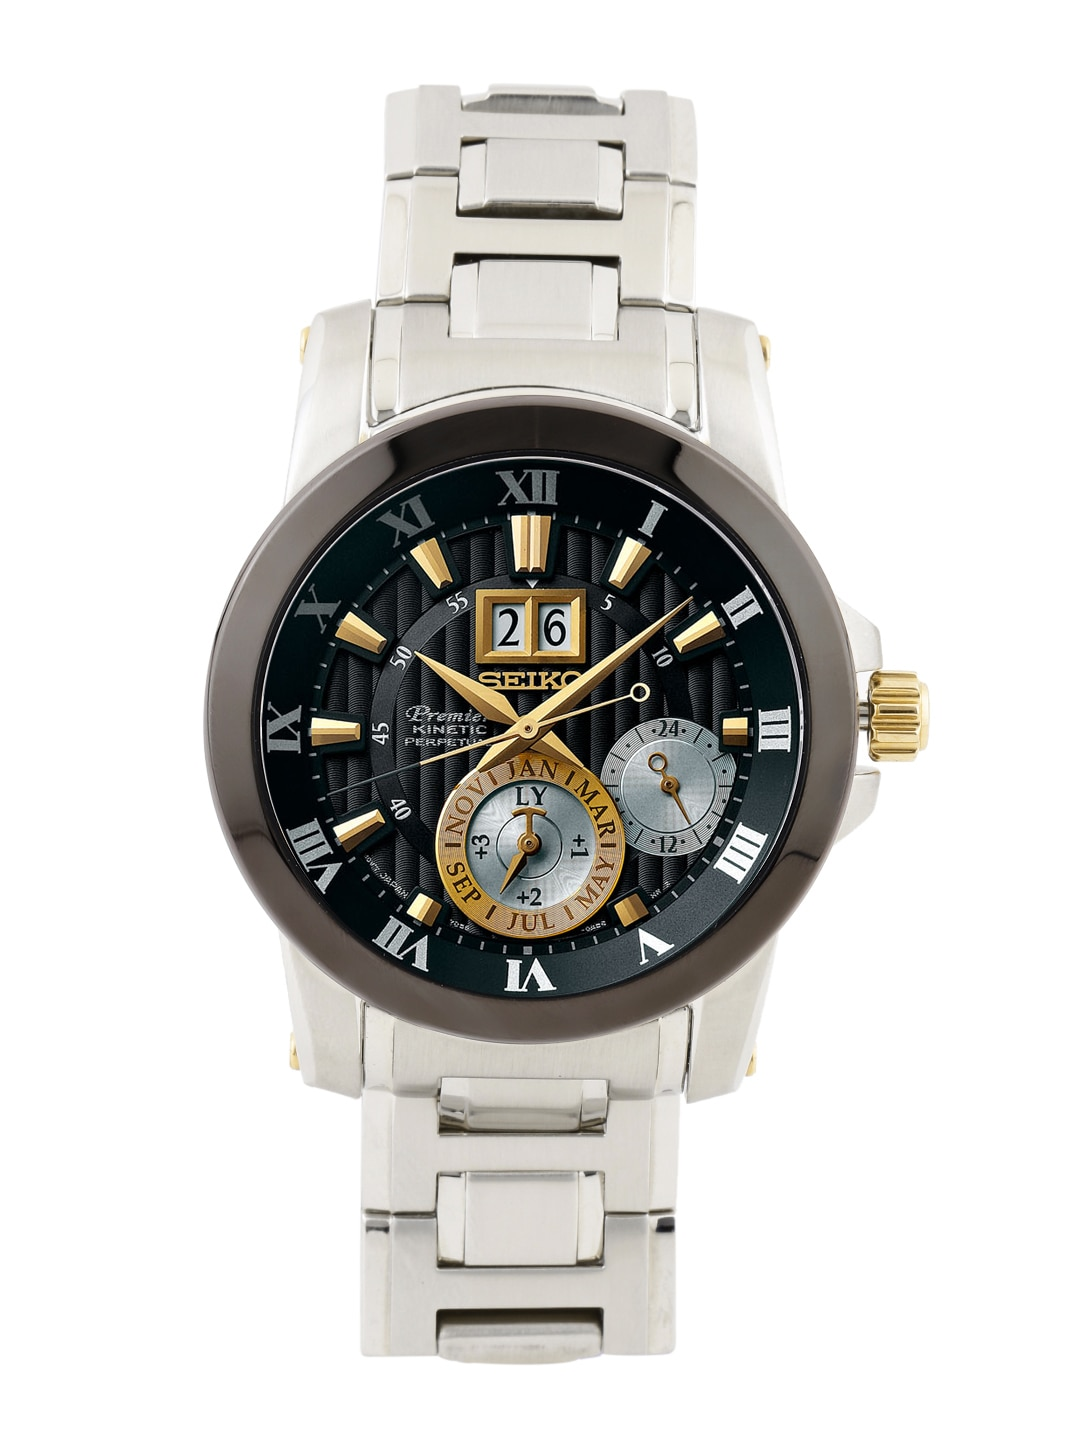 0b1f51c66c4 Watch Watches - Buy Watch Watches online in India